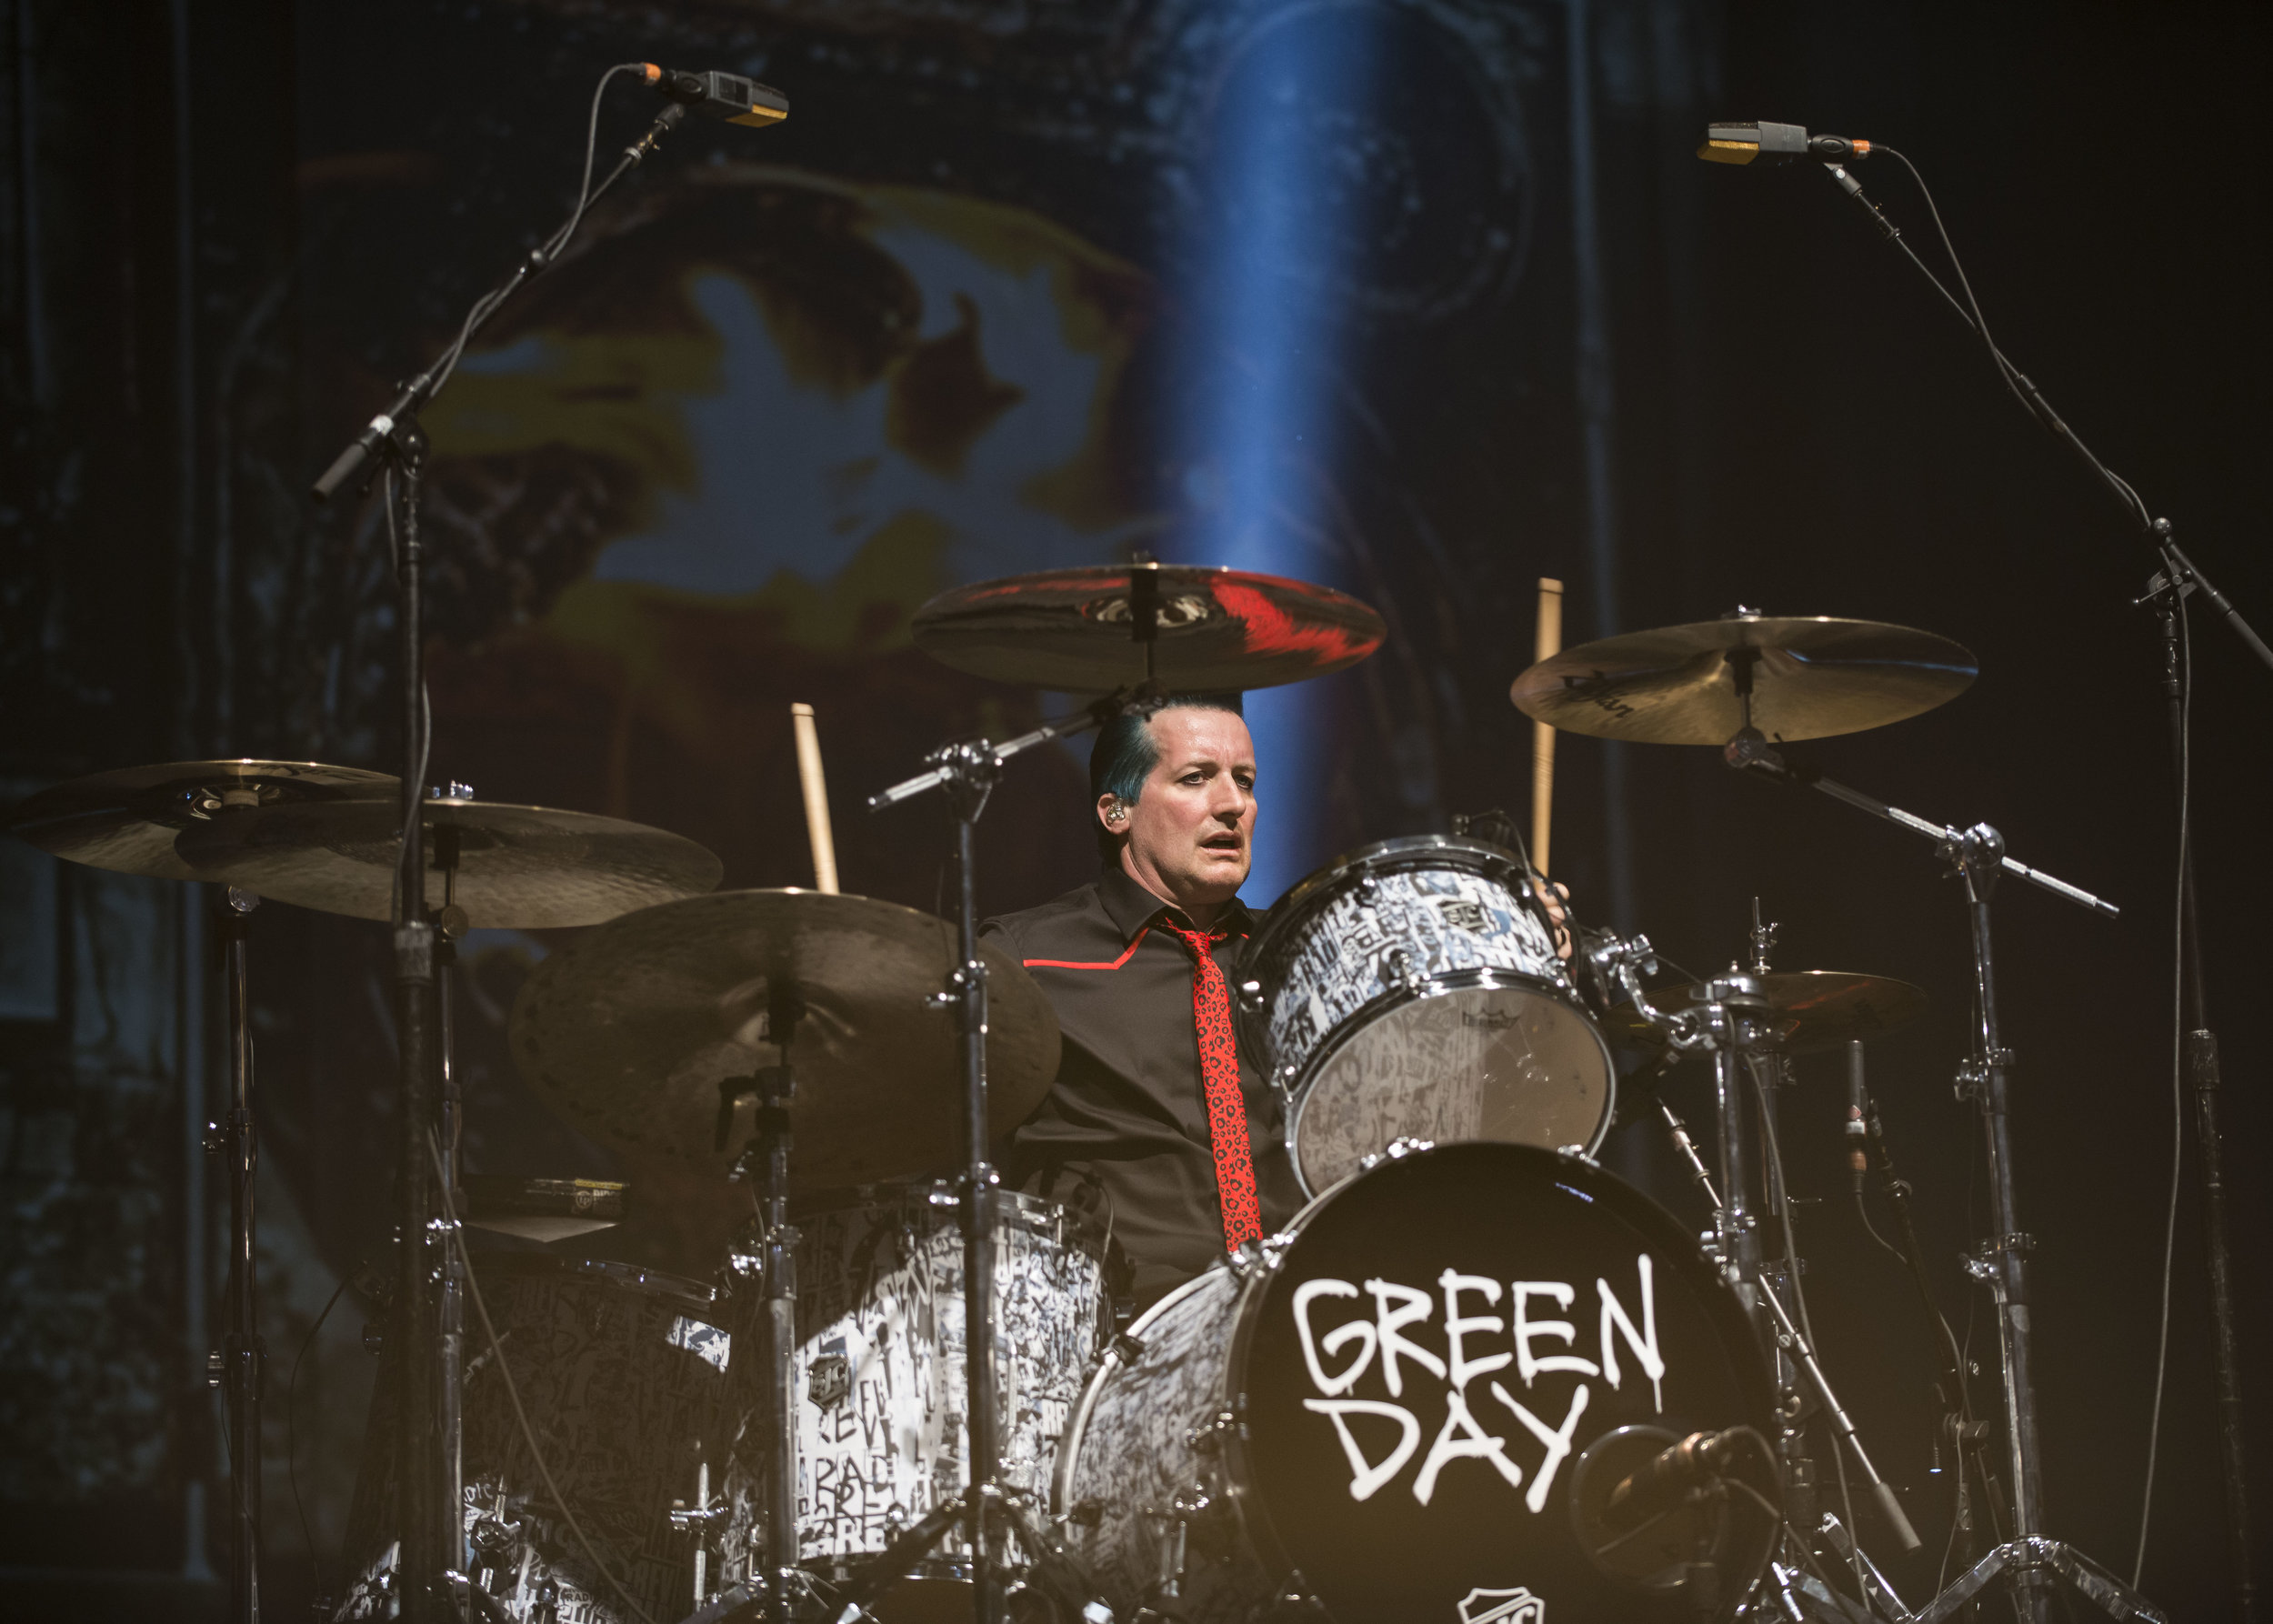 GreenDay_2017_0008.jpg